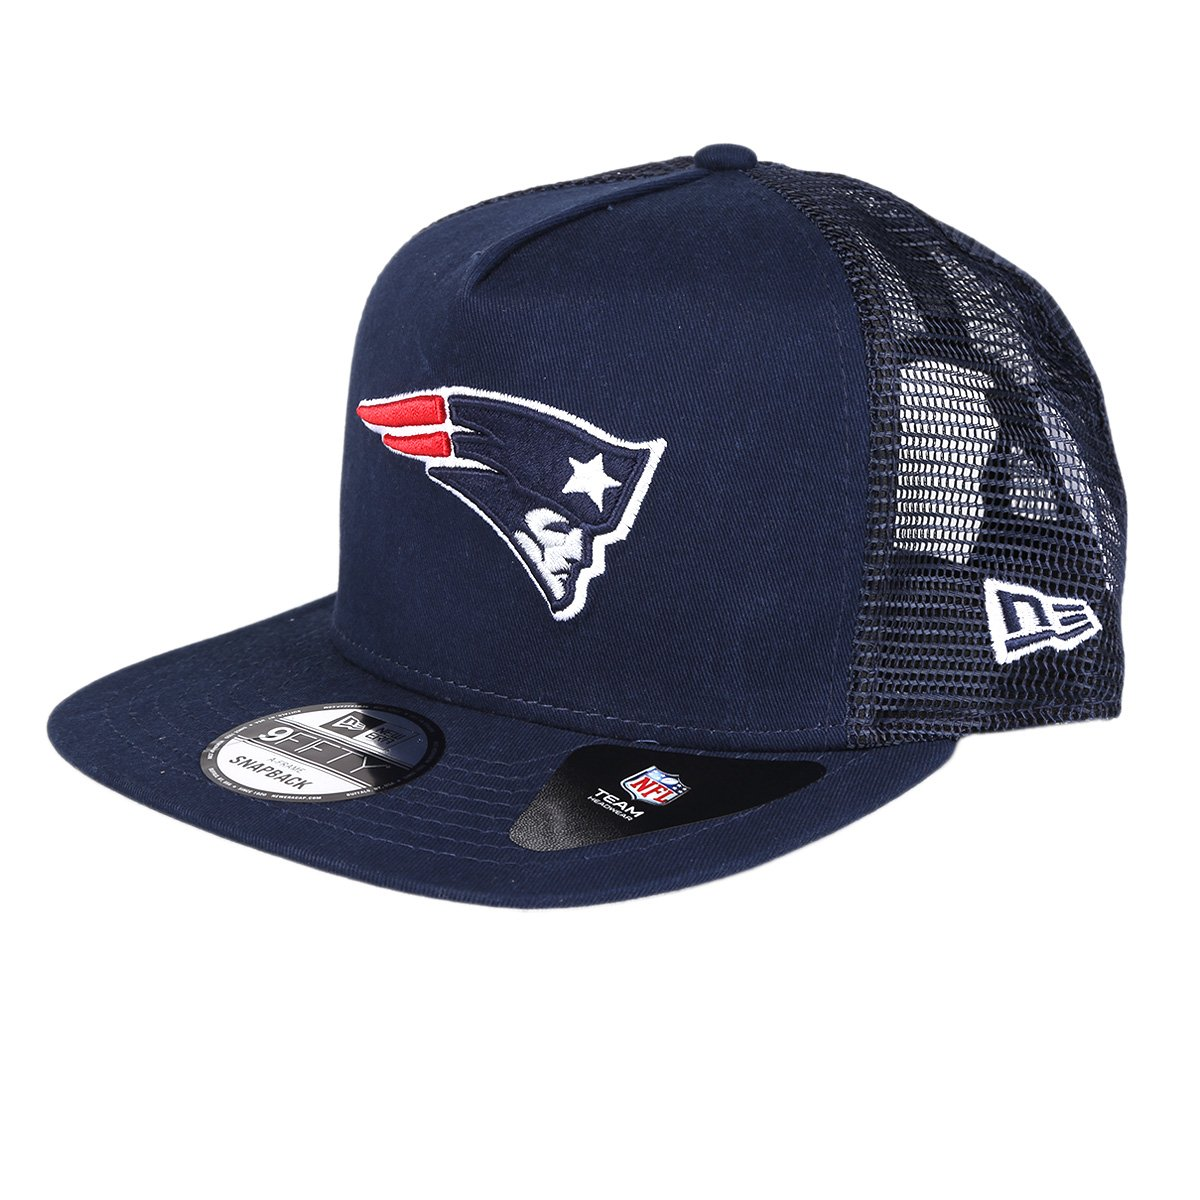 Boné New Era NFL New England Patriots Aba Reta 950 Af Sn Team Washed -  Compre Agora  362ba813cb9